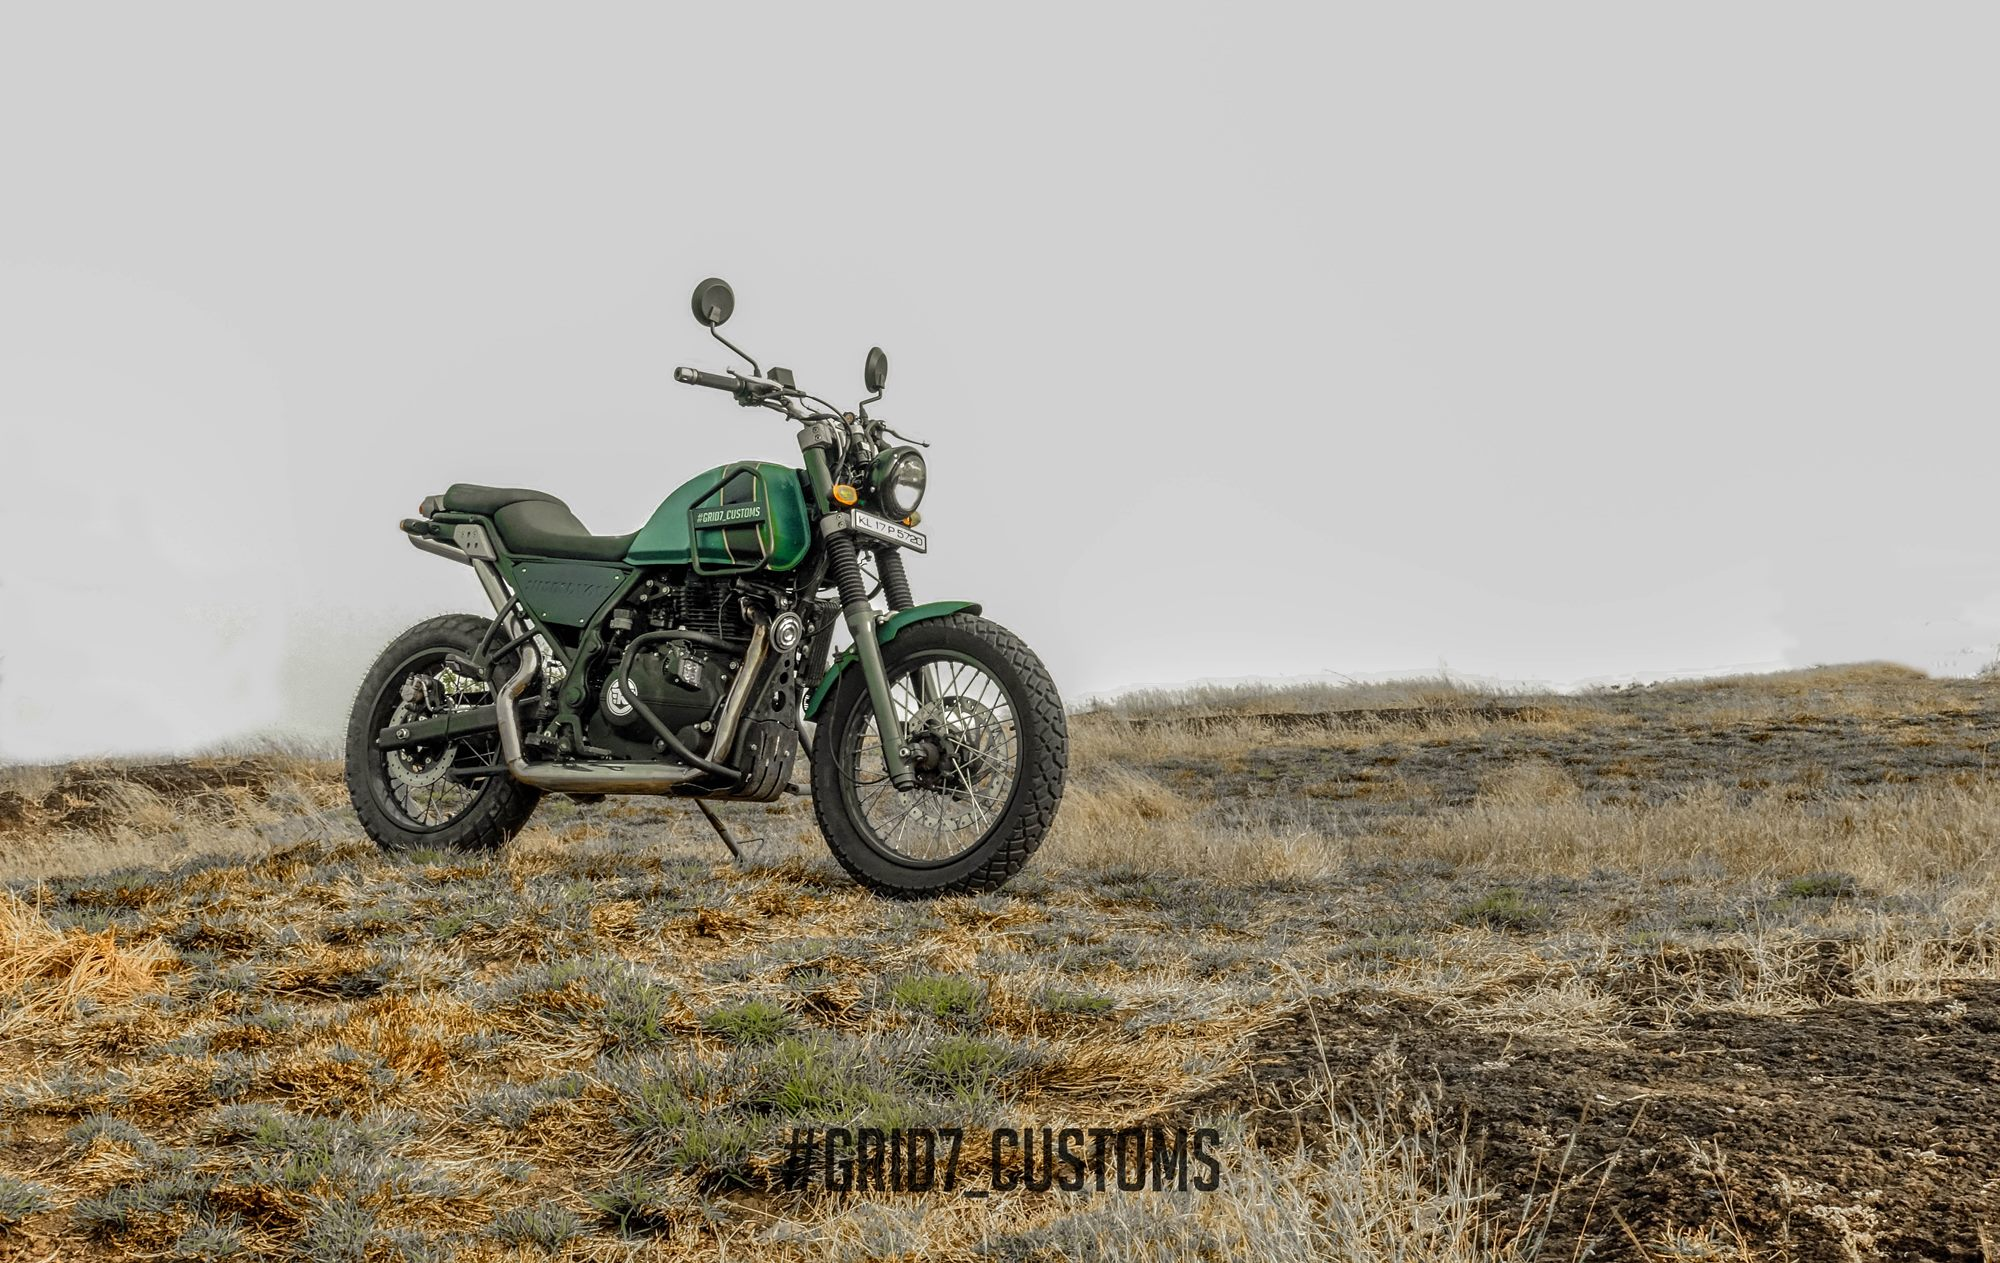 Royal Enfield Himalayan Painting GRID7 Customs